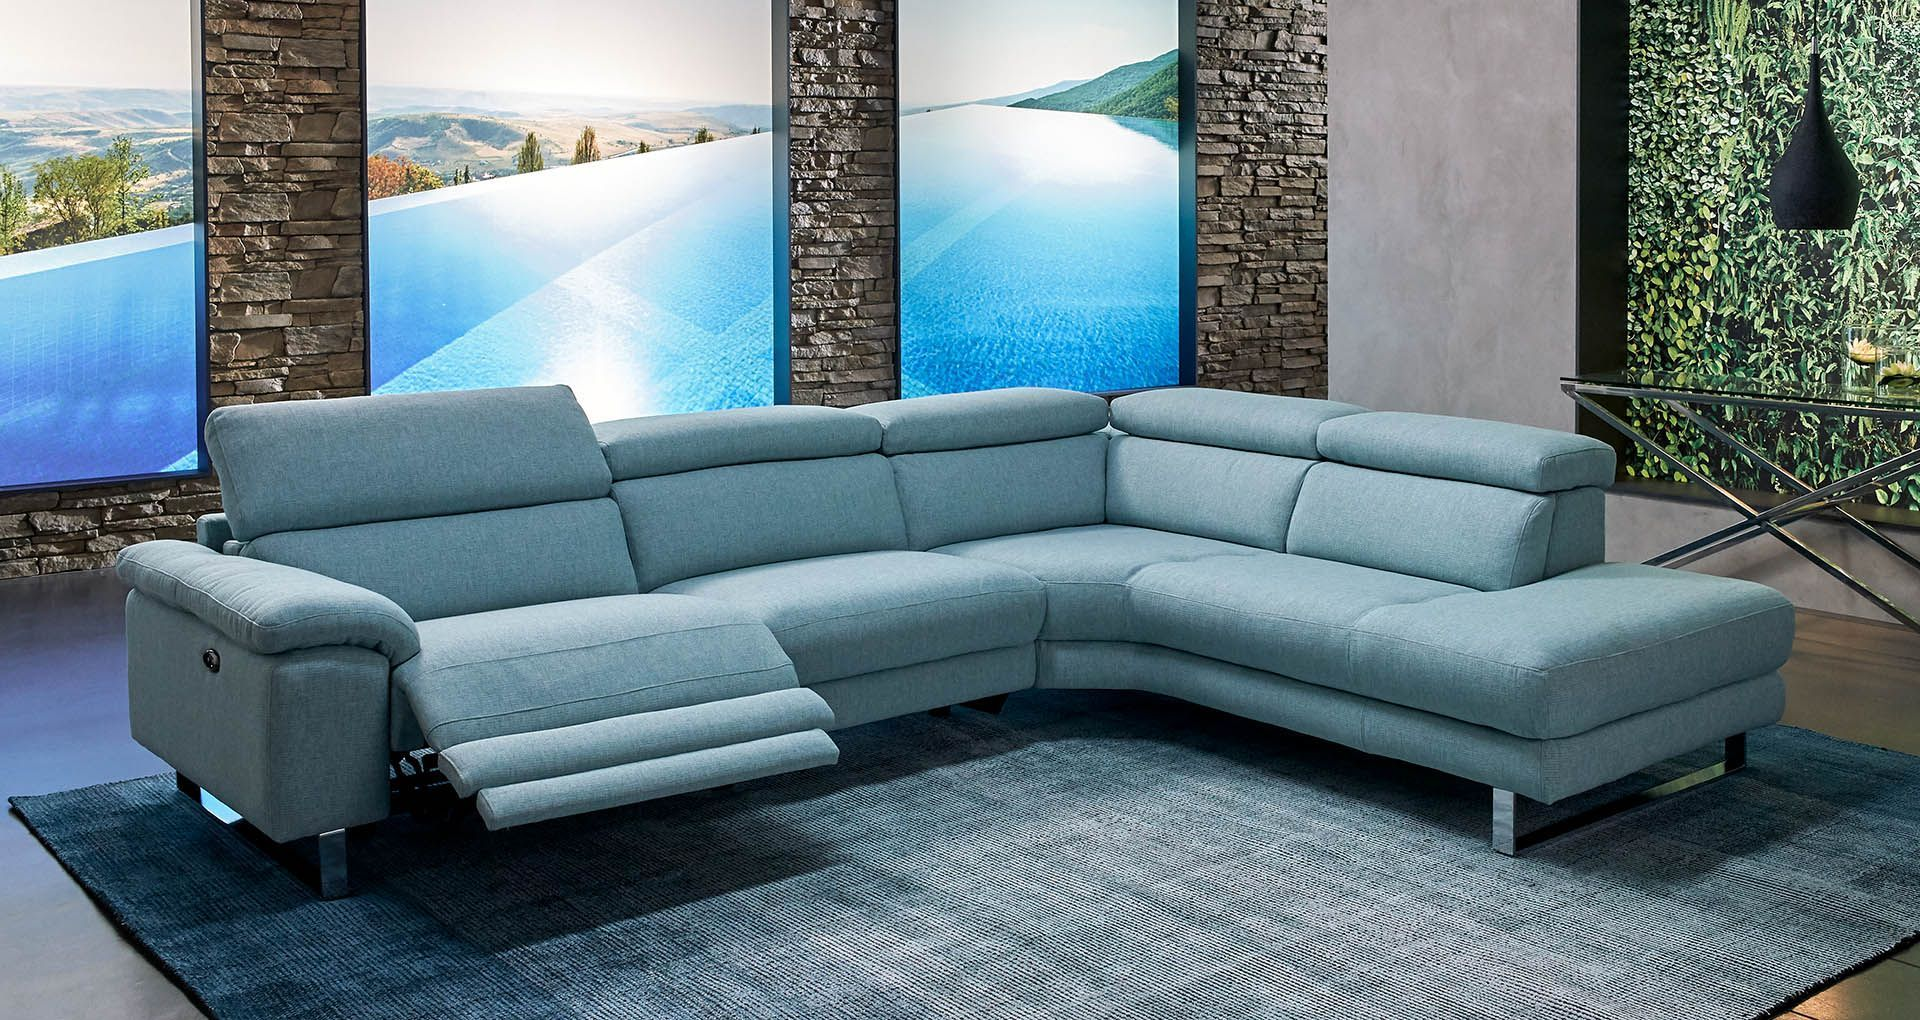 ZAKIA Lounges Products Nick Scali Furniture